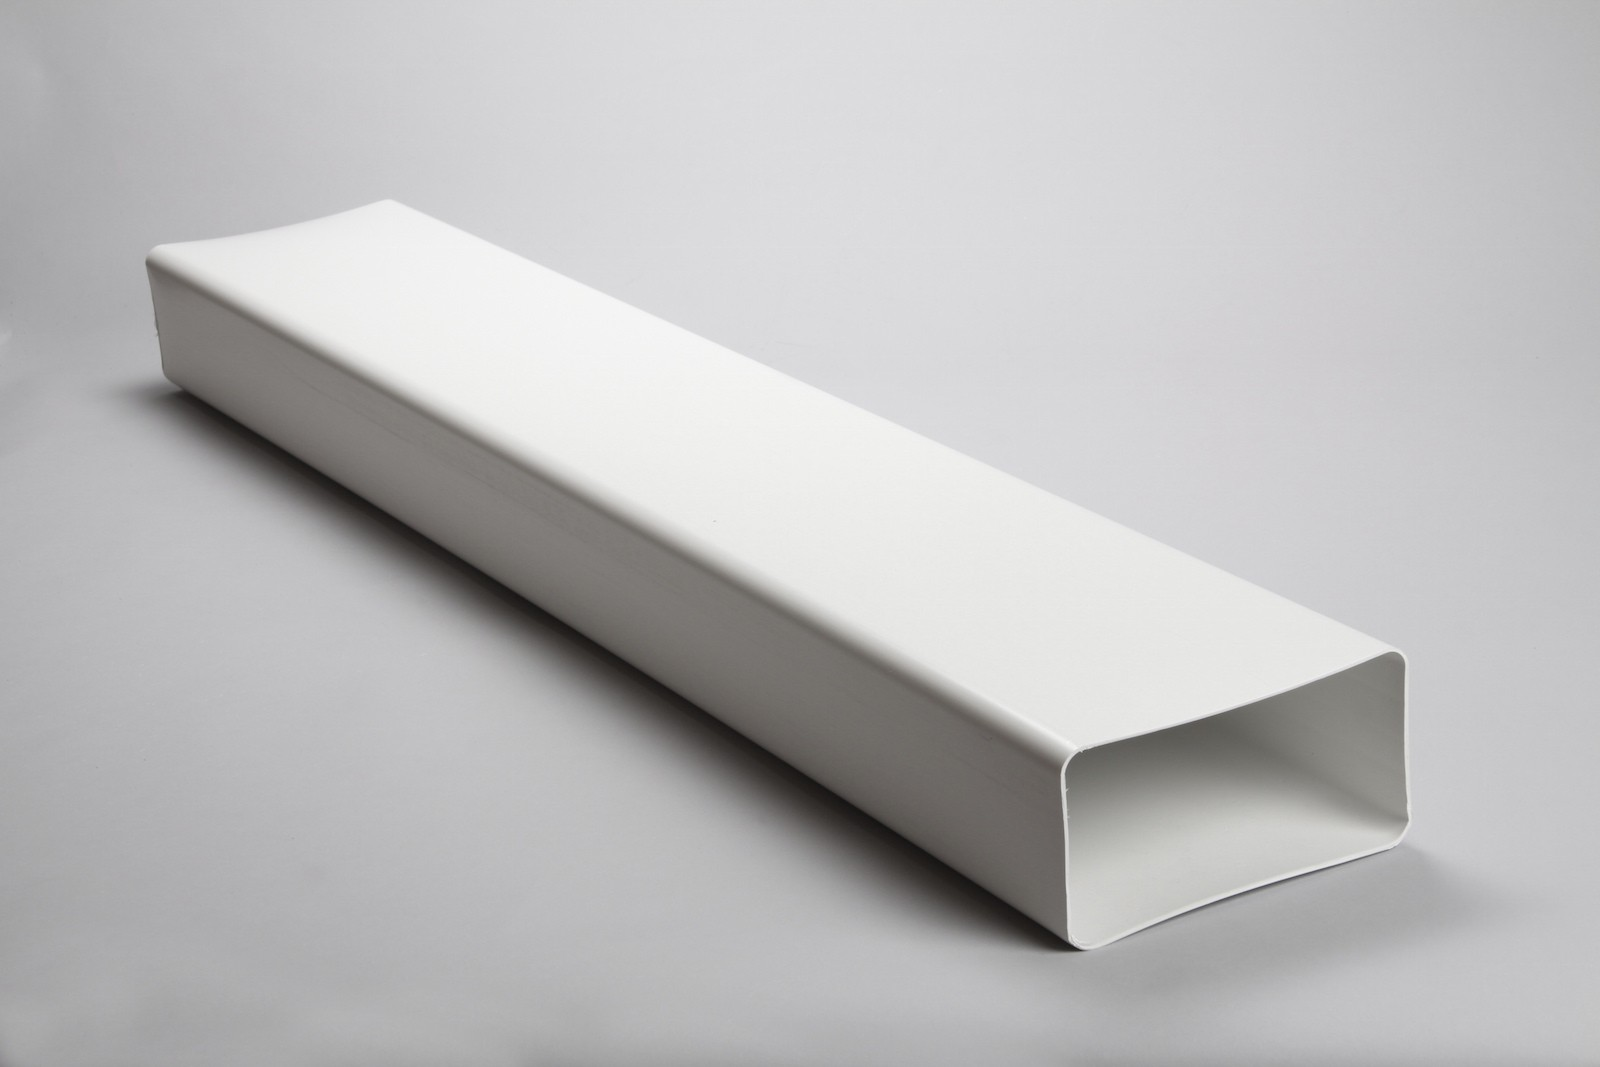 1 metre 220mm x 90mm rectangular flat channel megaduct ducting